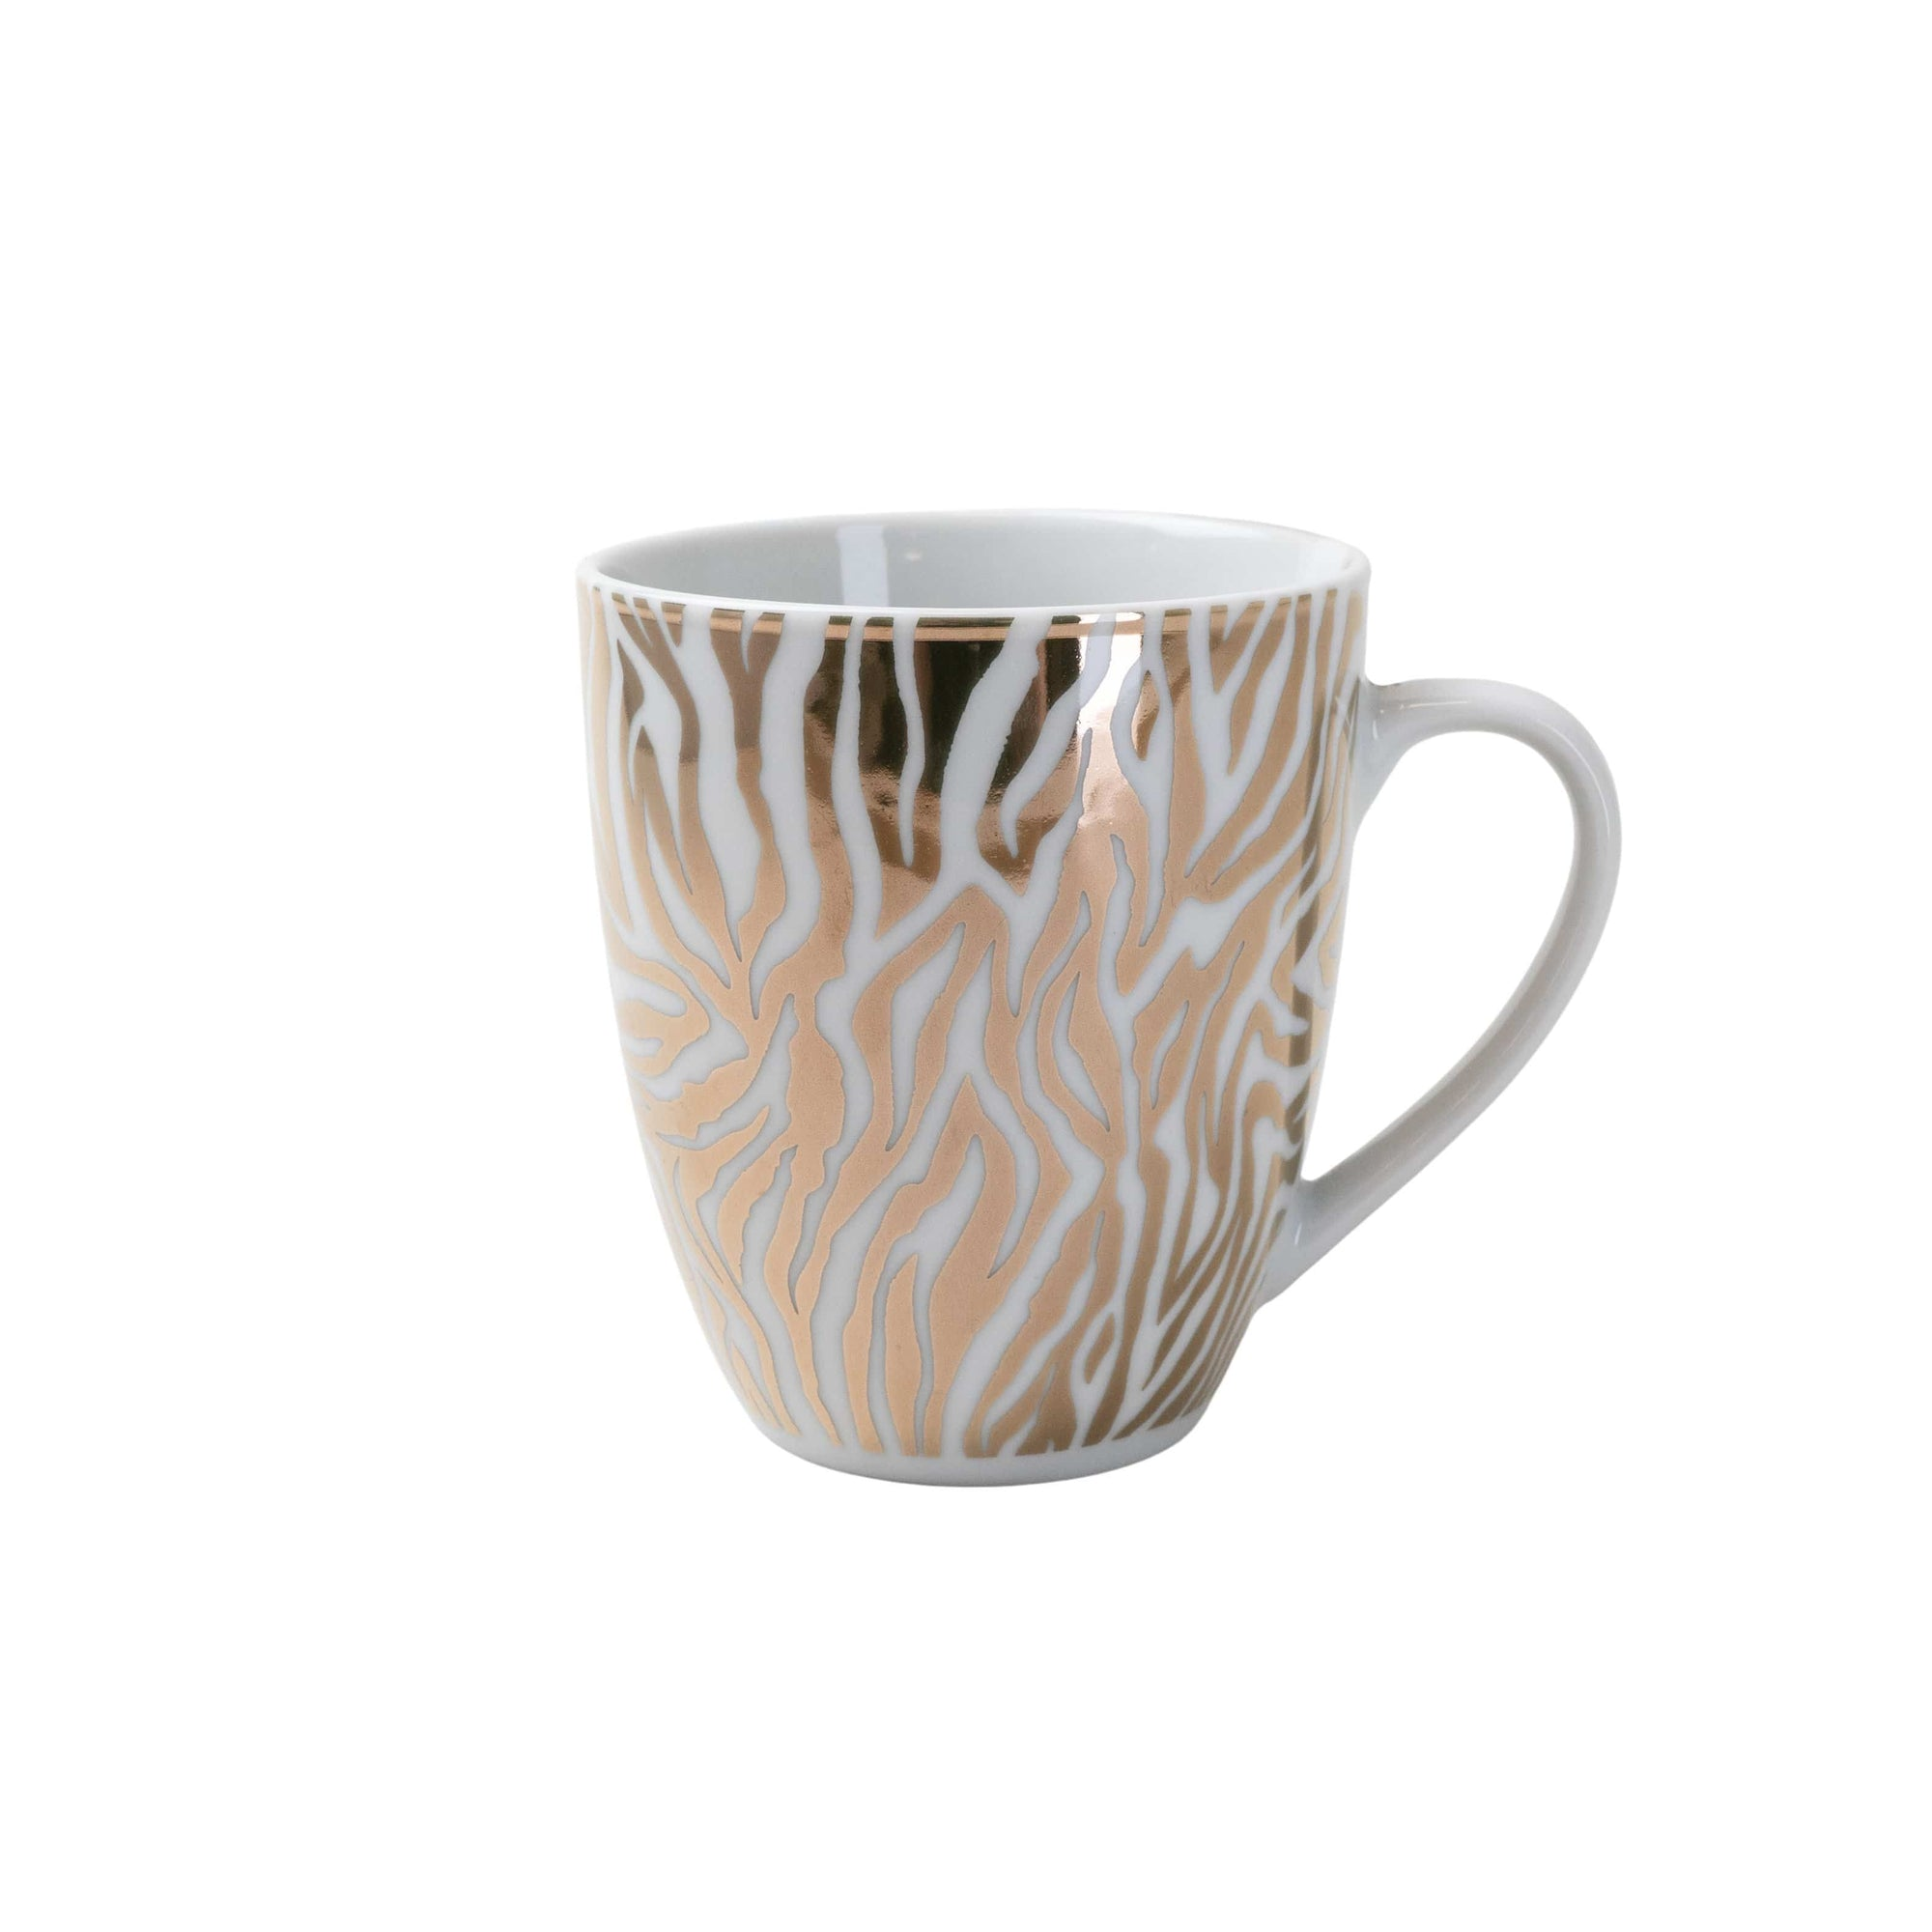 Candlelight Home Mug Animal Luxe Curved Mug Zebra Print Gold 6PK